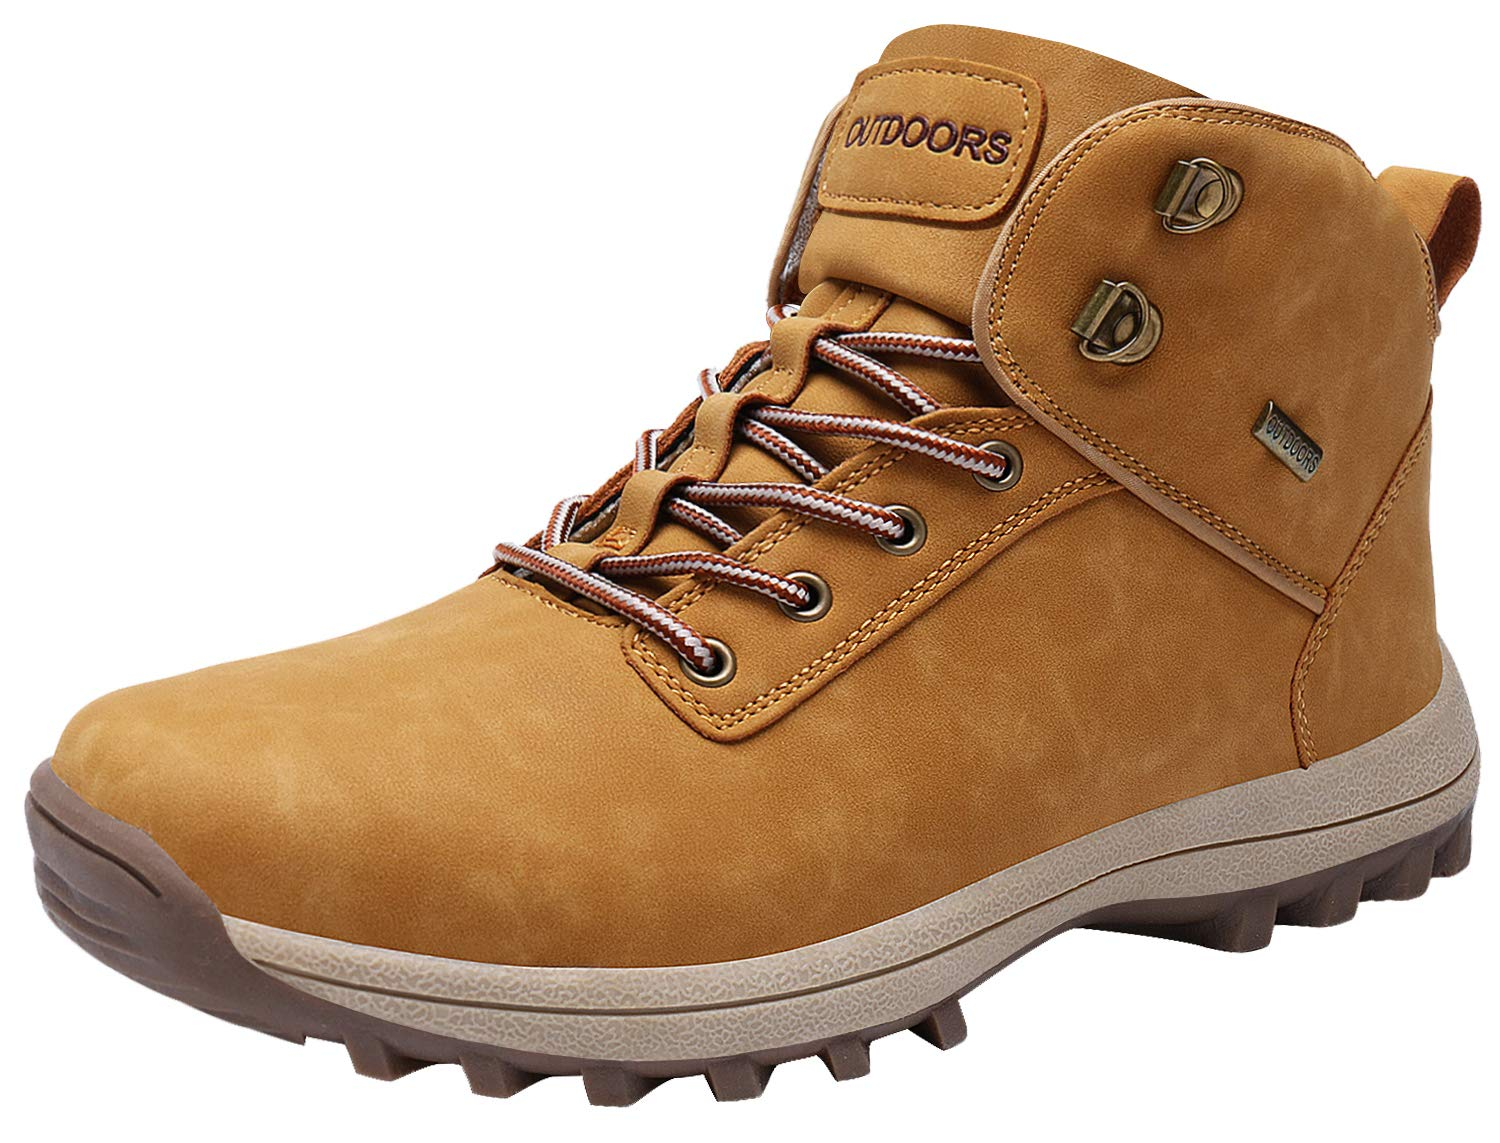 Caitin Men's Boots Winter Waterproof Leather Outdoor Hiking Shoes